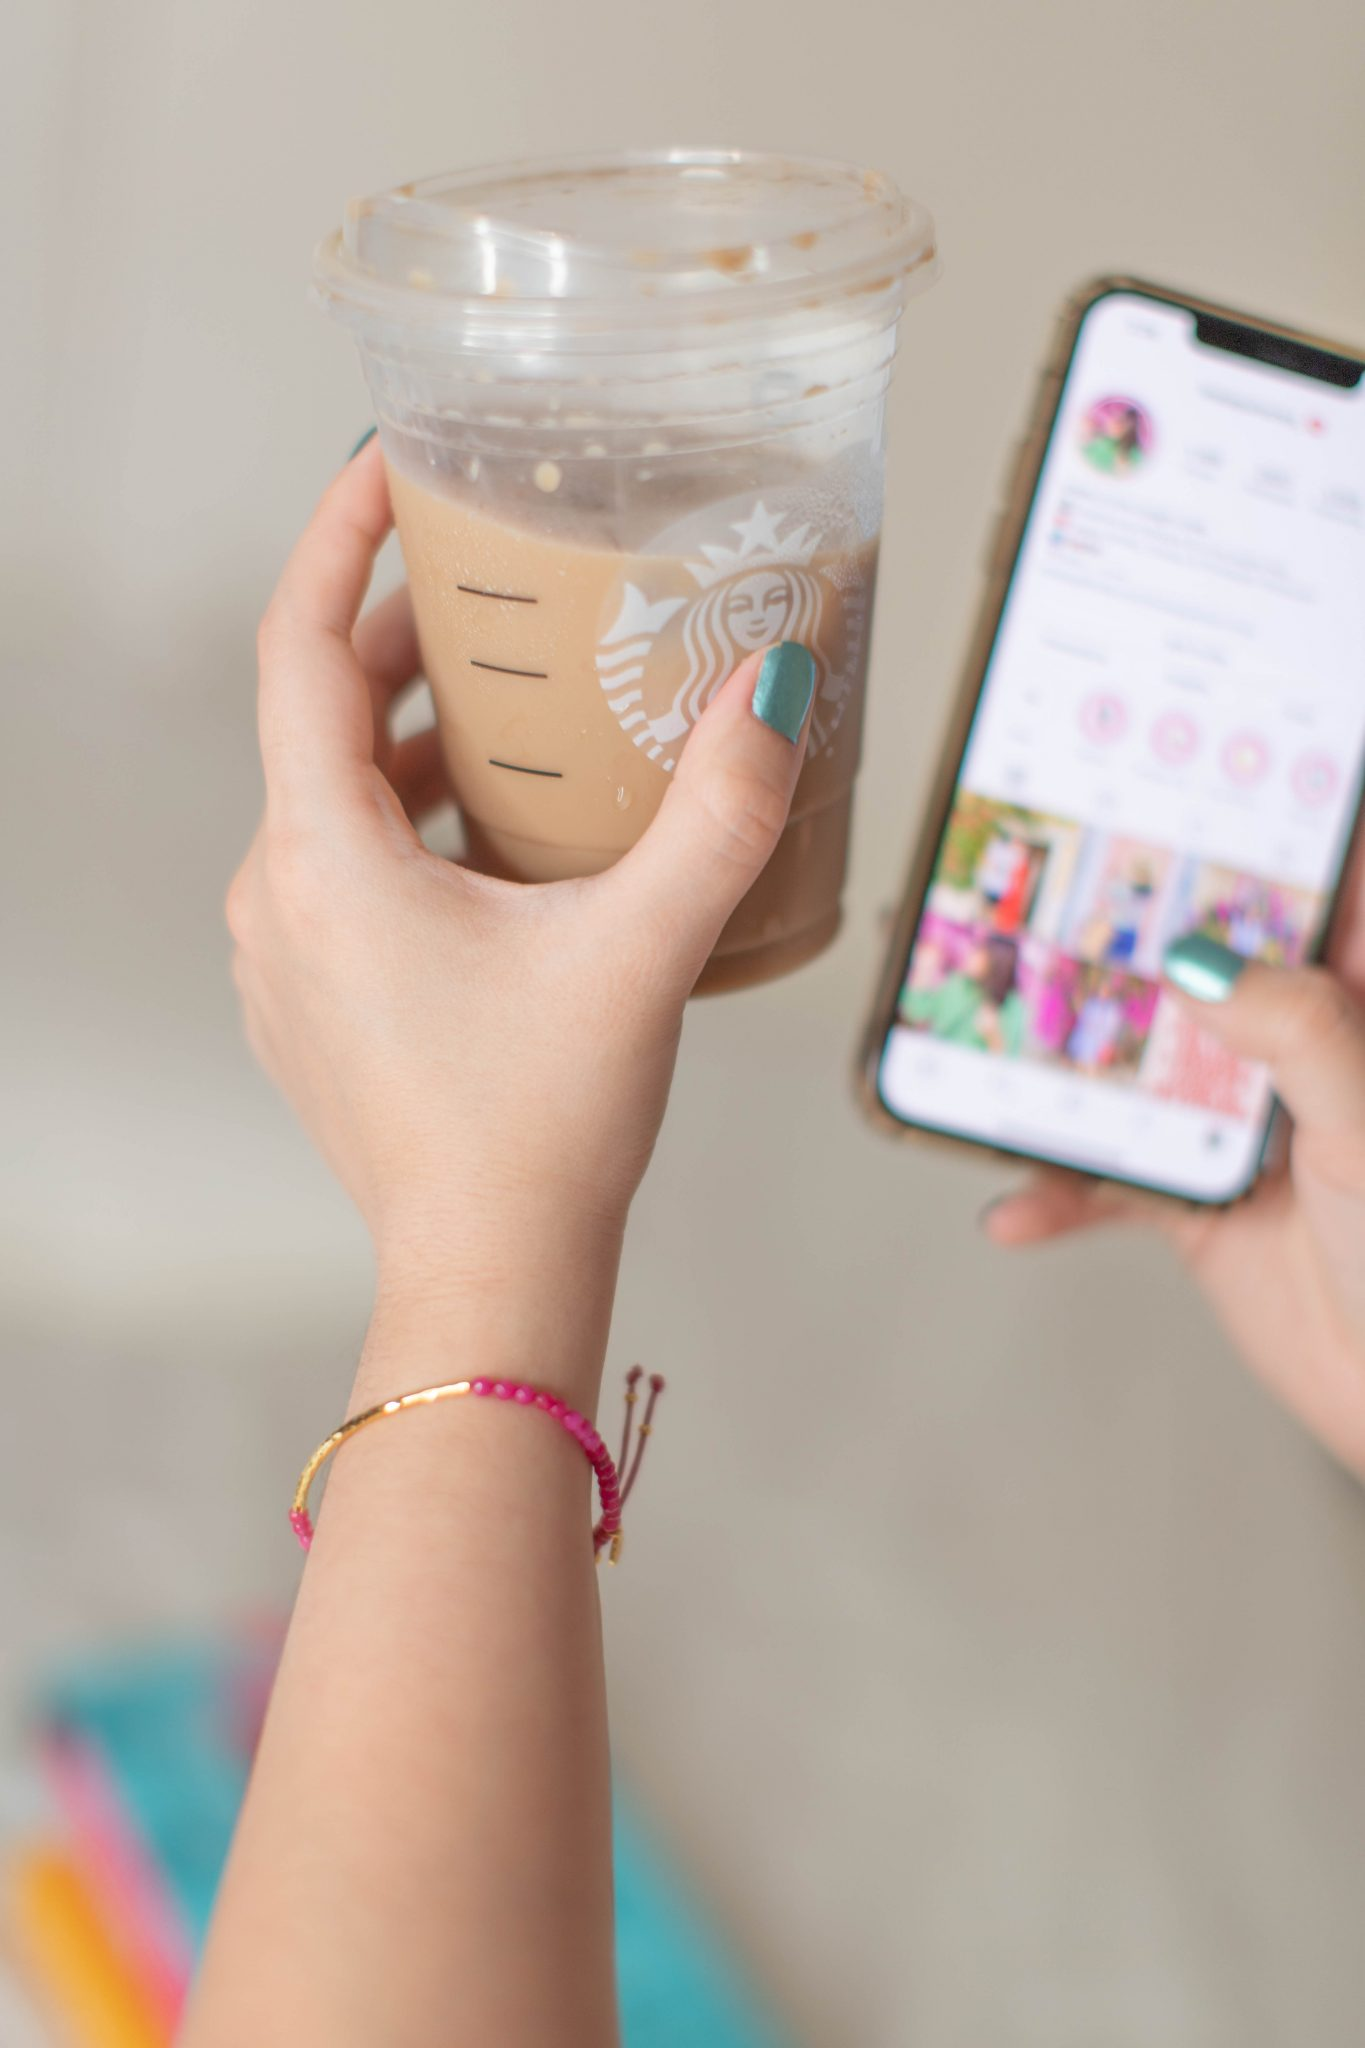 Recent Fashion and Beauty Finds by popular NYC life and style blog, Live Laugh Linda: image of Starbucks coffee and Gorjana Power Stone bracelet